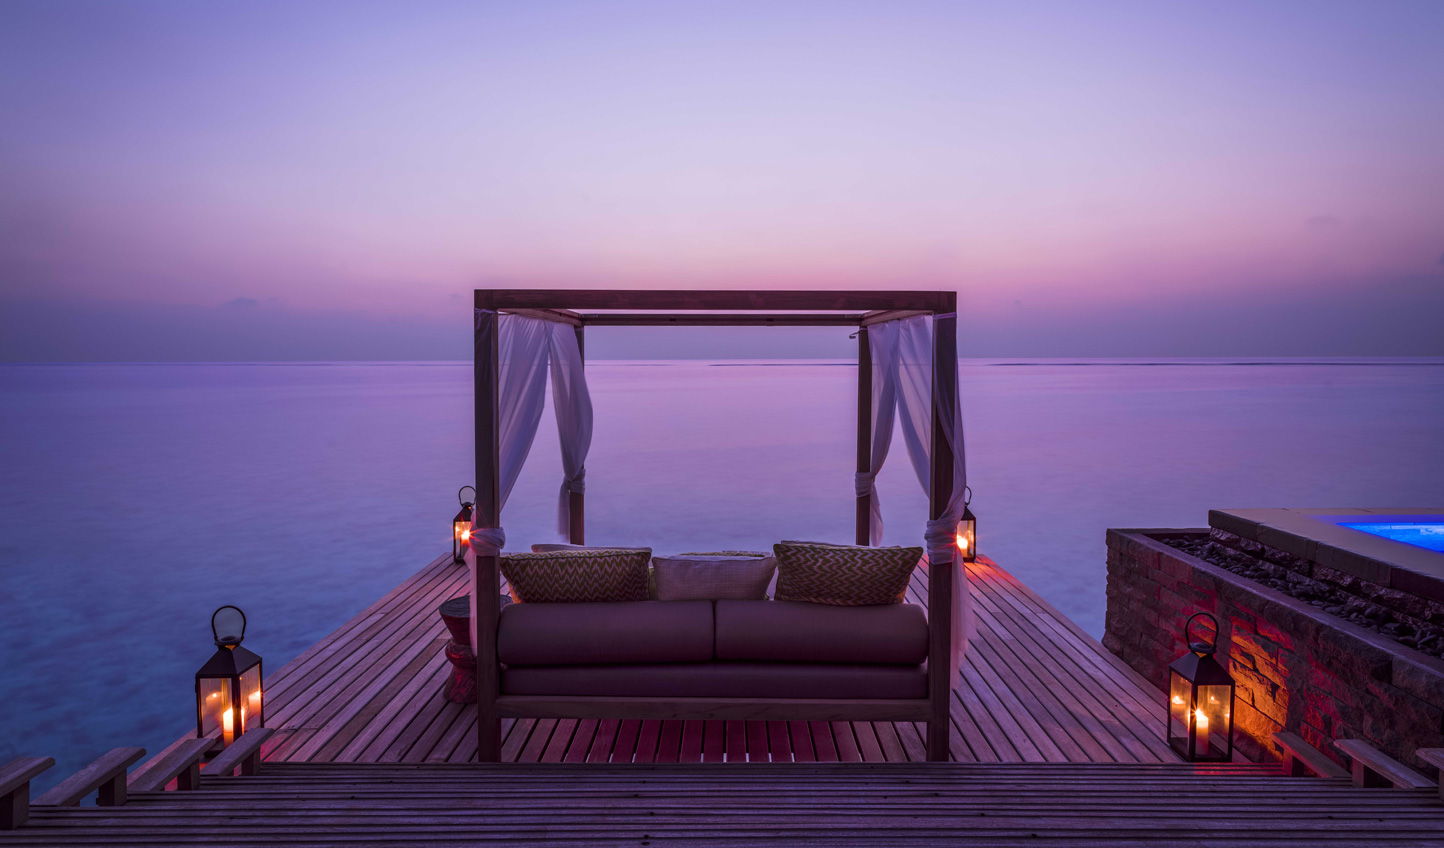 Watch the sun slip away from the comfort of your private cabana